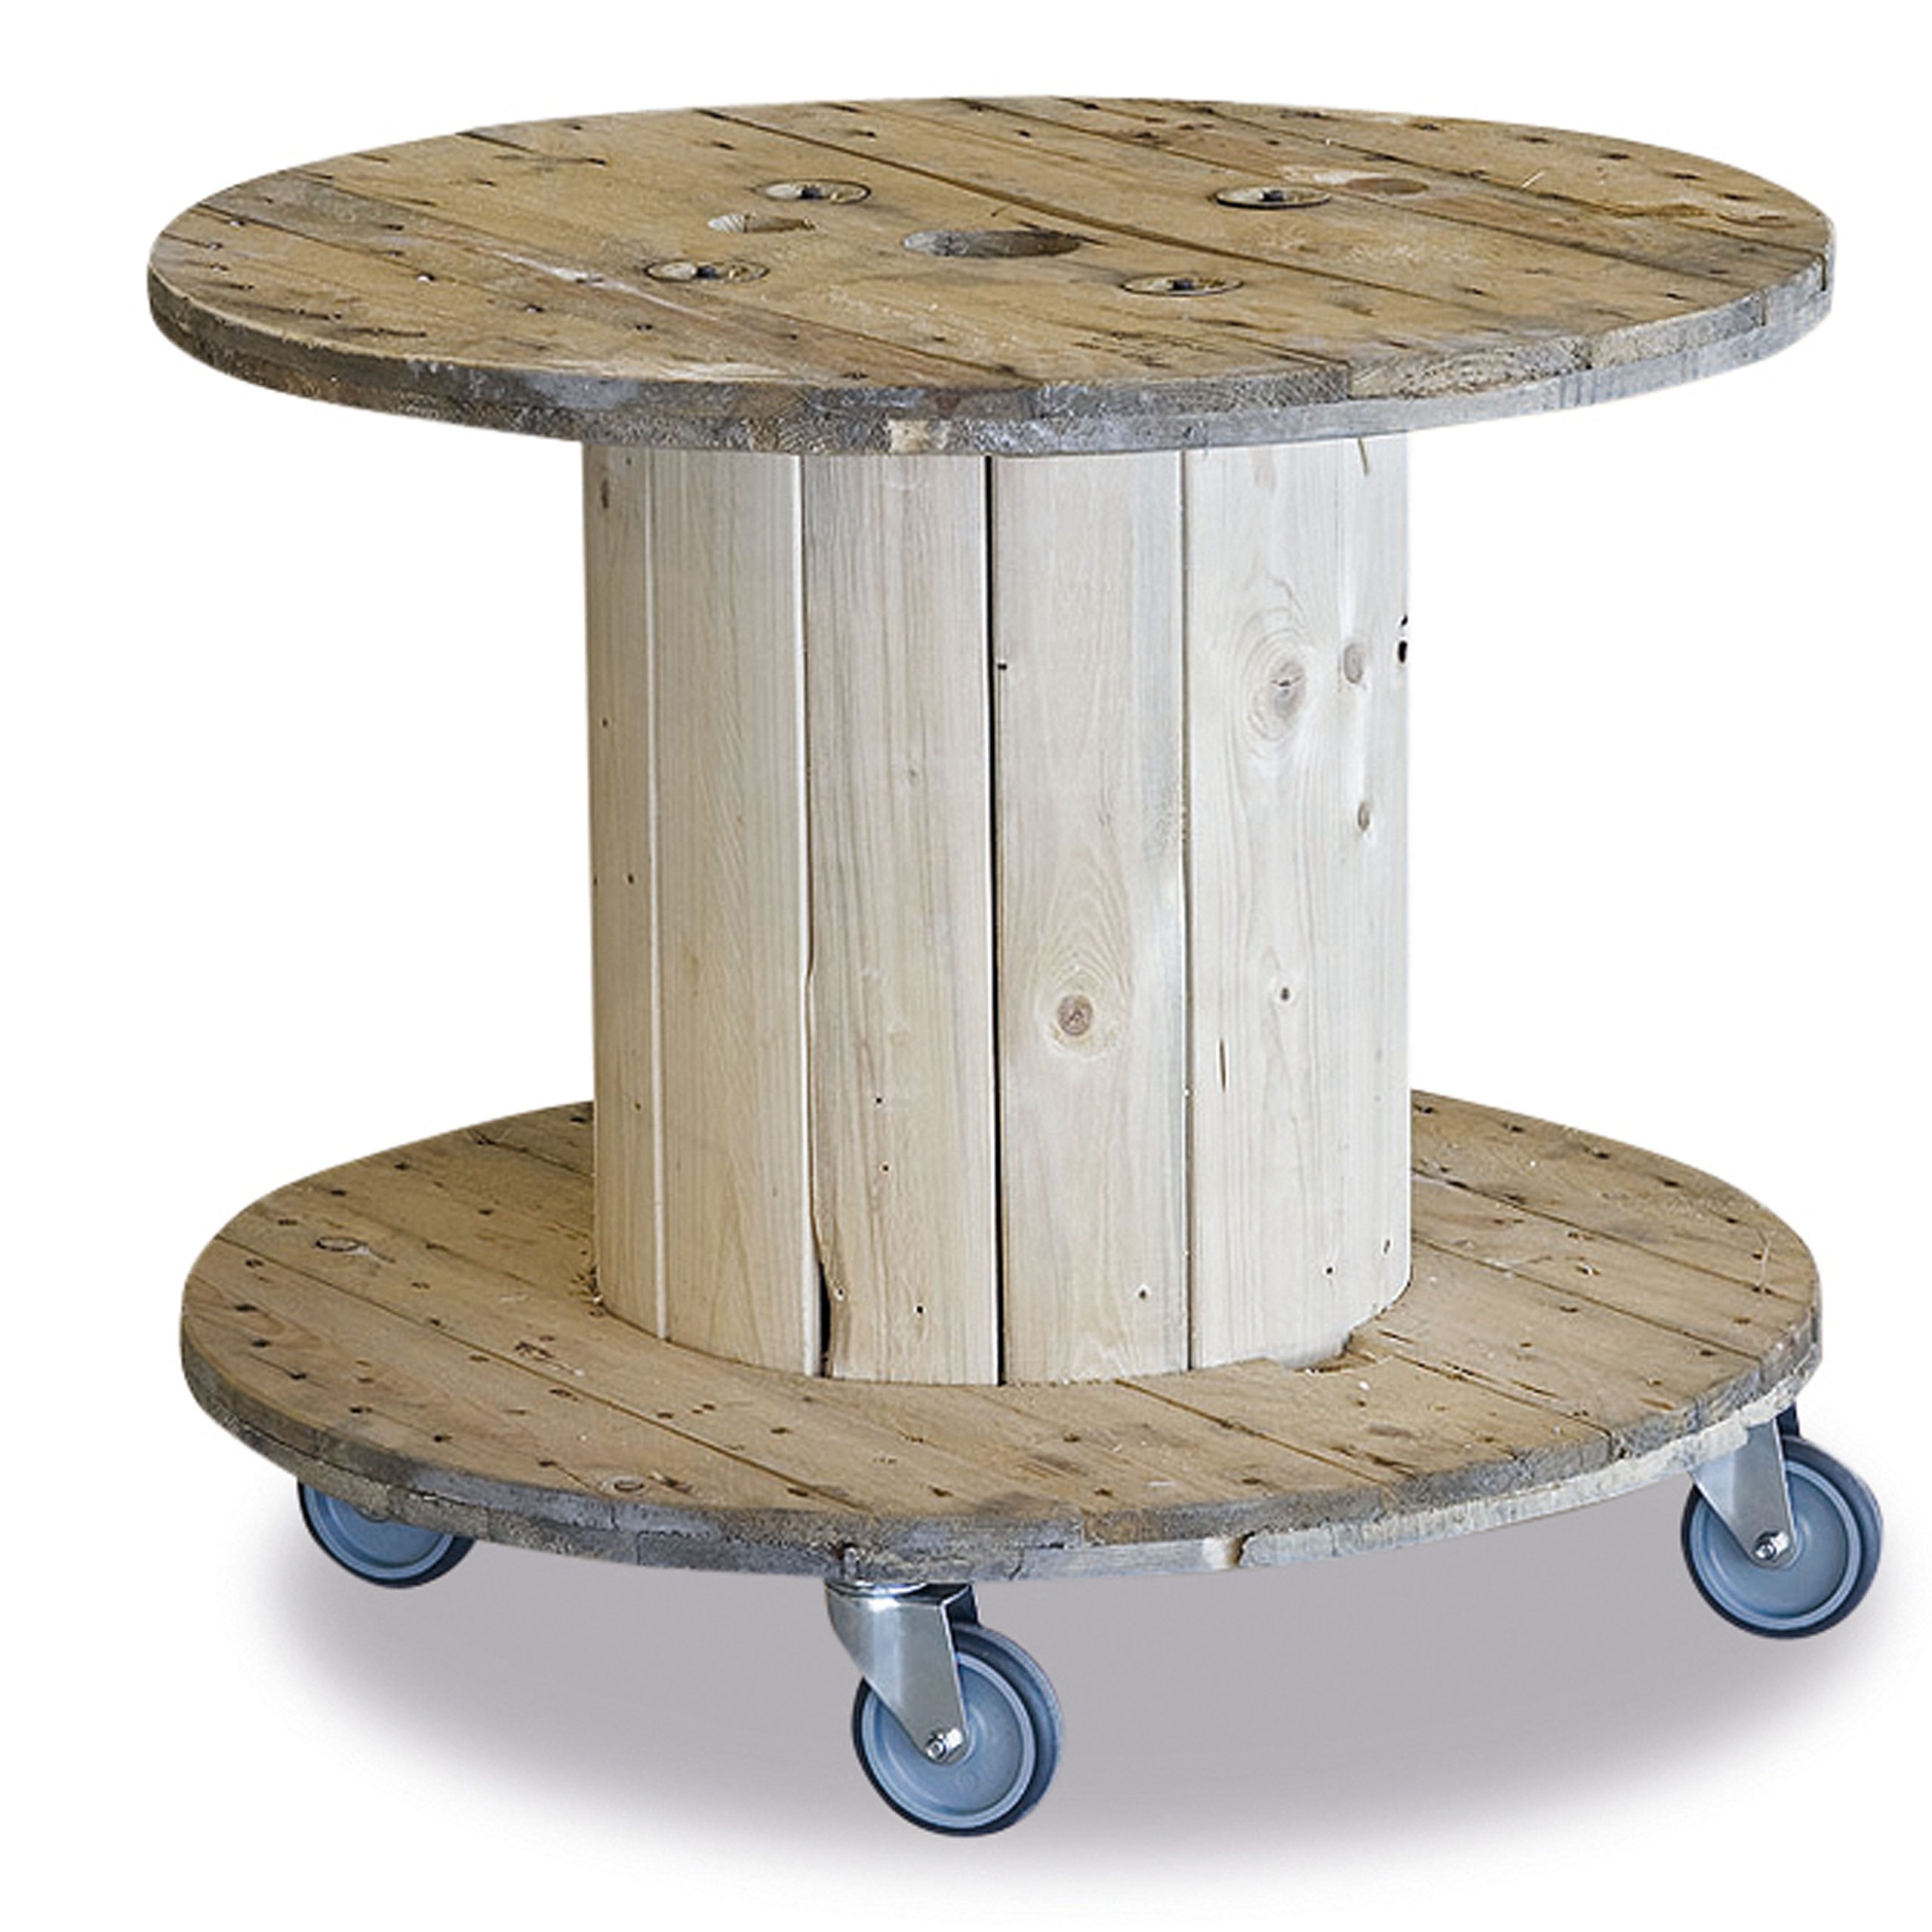 The Rustic Cable Table, Vintage, Repurposed, Recycled, And Reclaimed Pine, Castors, European, Occasional Accent Table, 31½ Diameter x 28 Inches Tall, By Whole House Worlds.